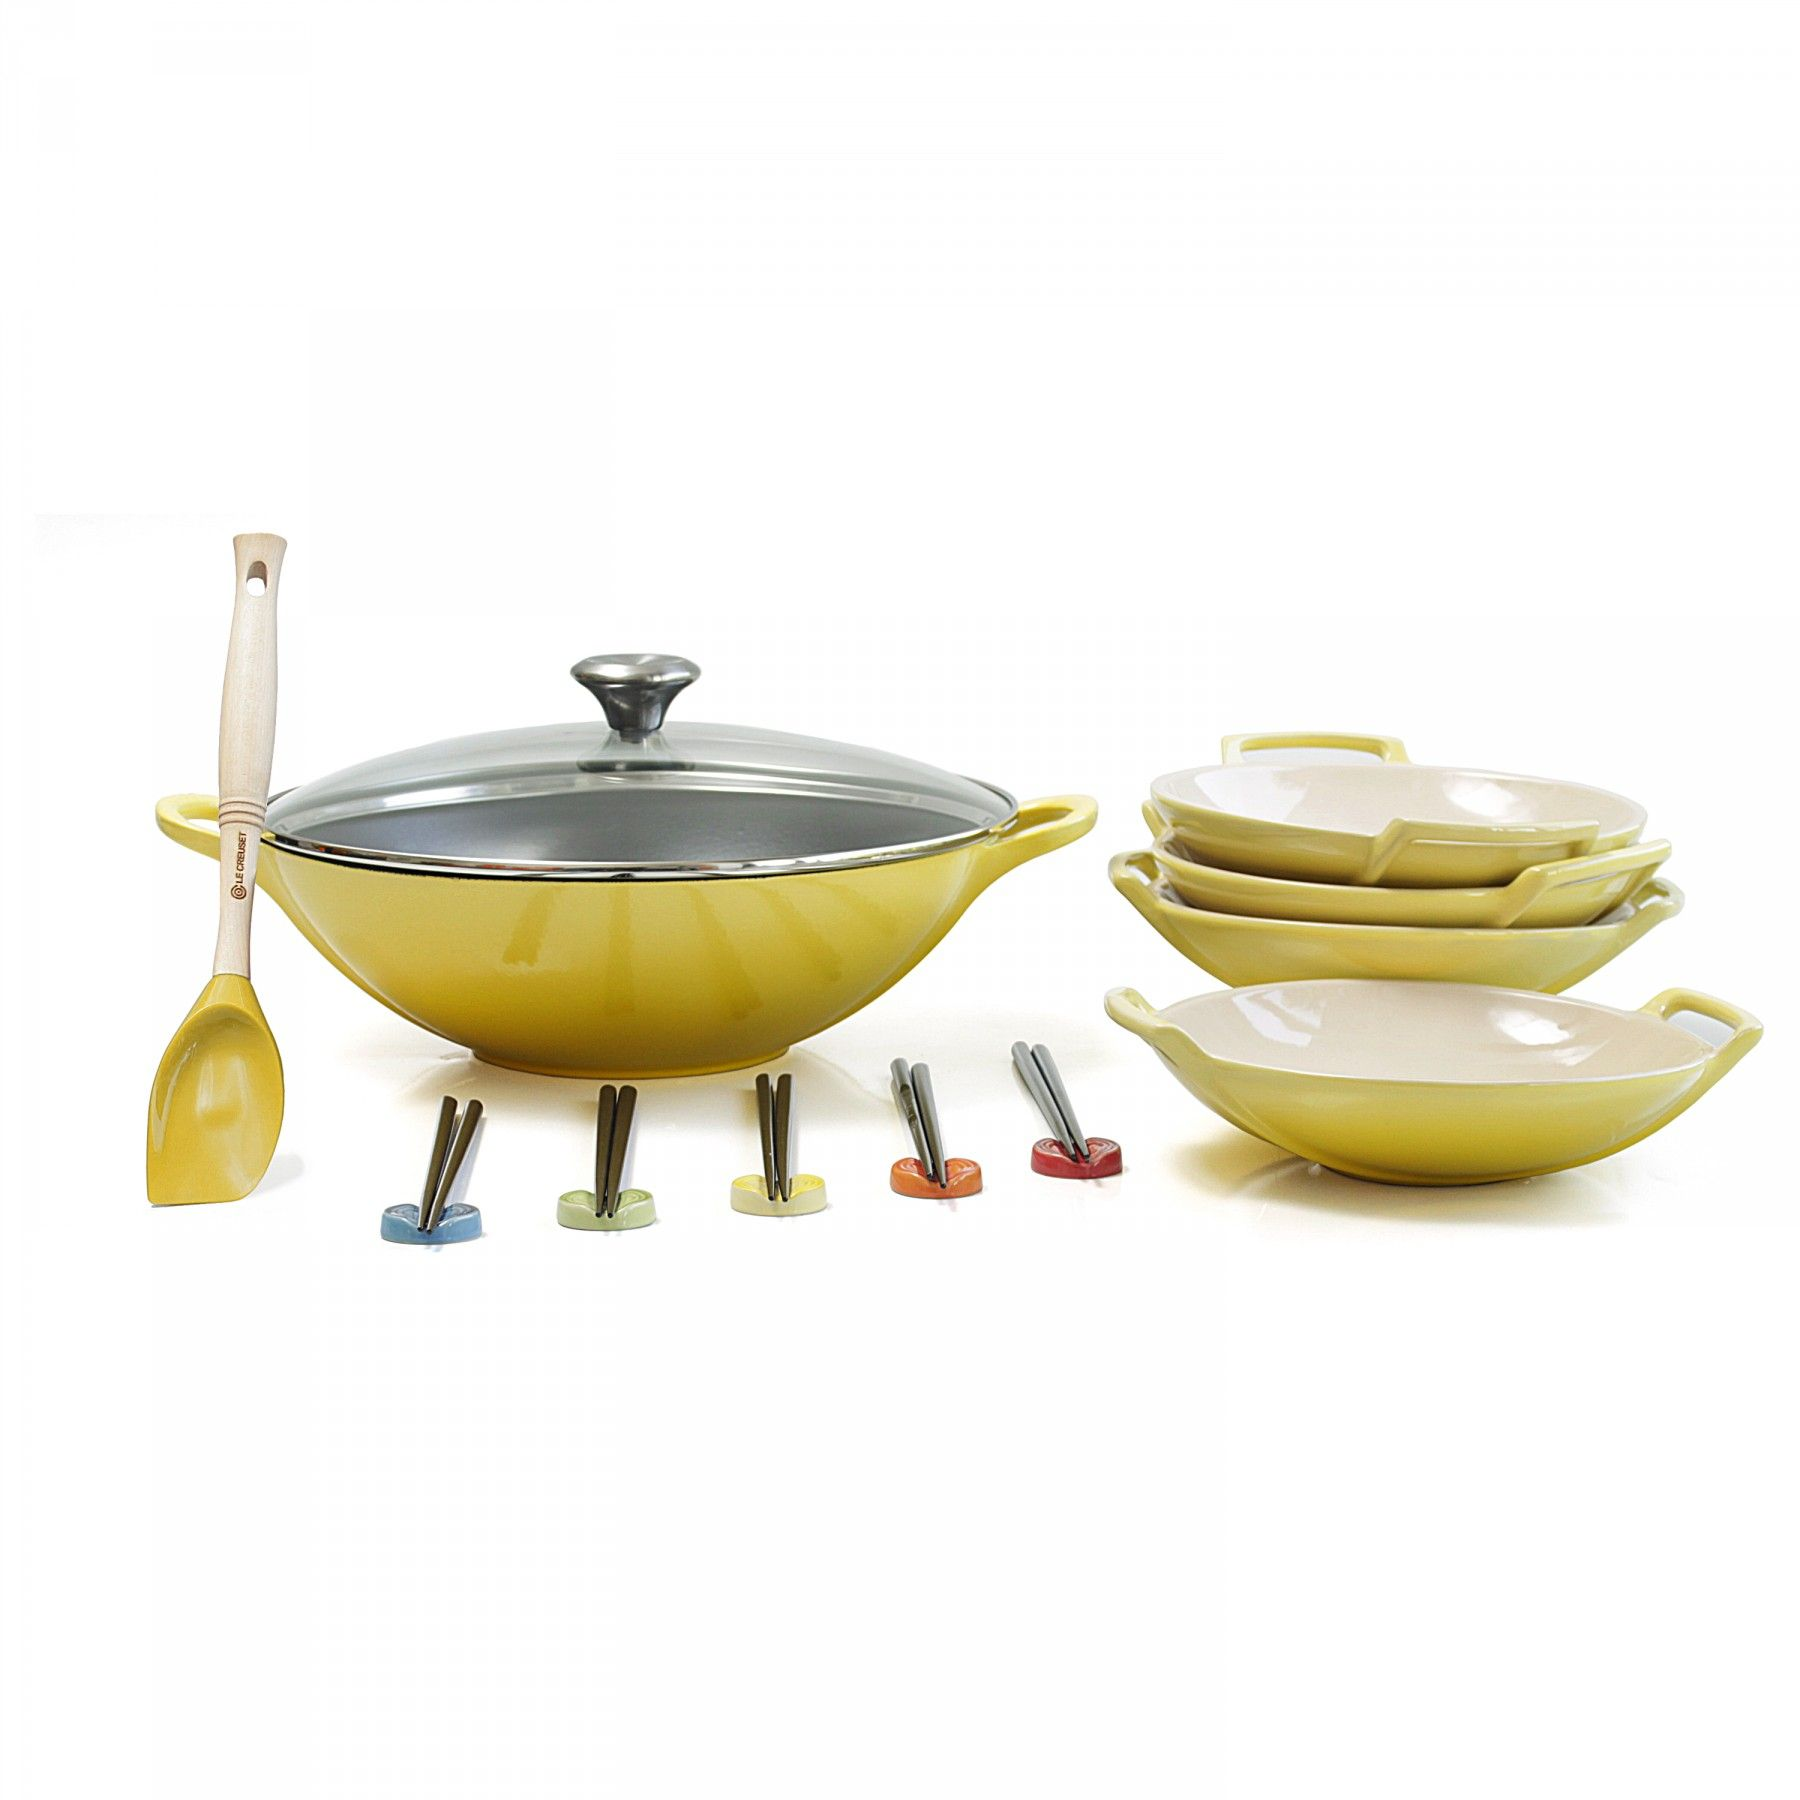 Prepare Delicious Asian Inspired Cuisine With This Le Creuset Wok Set Includes One